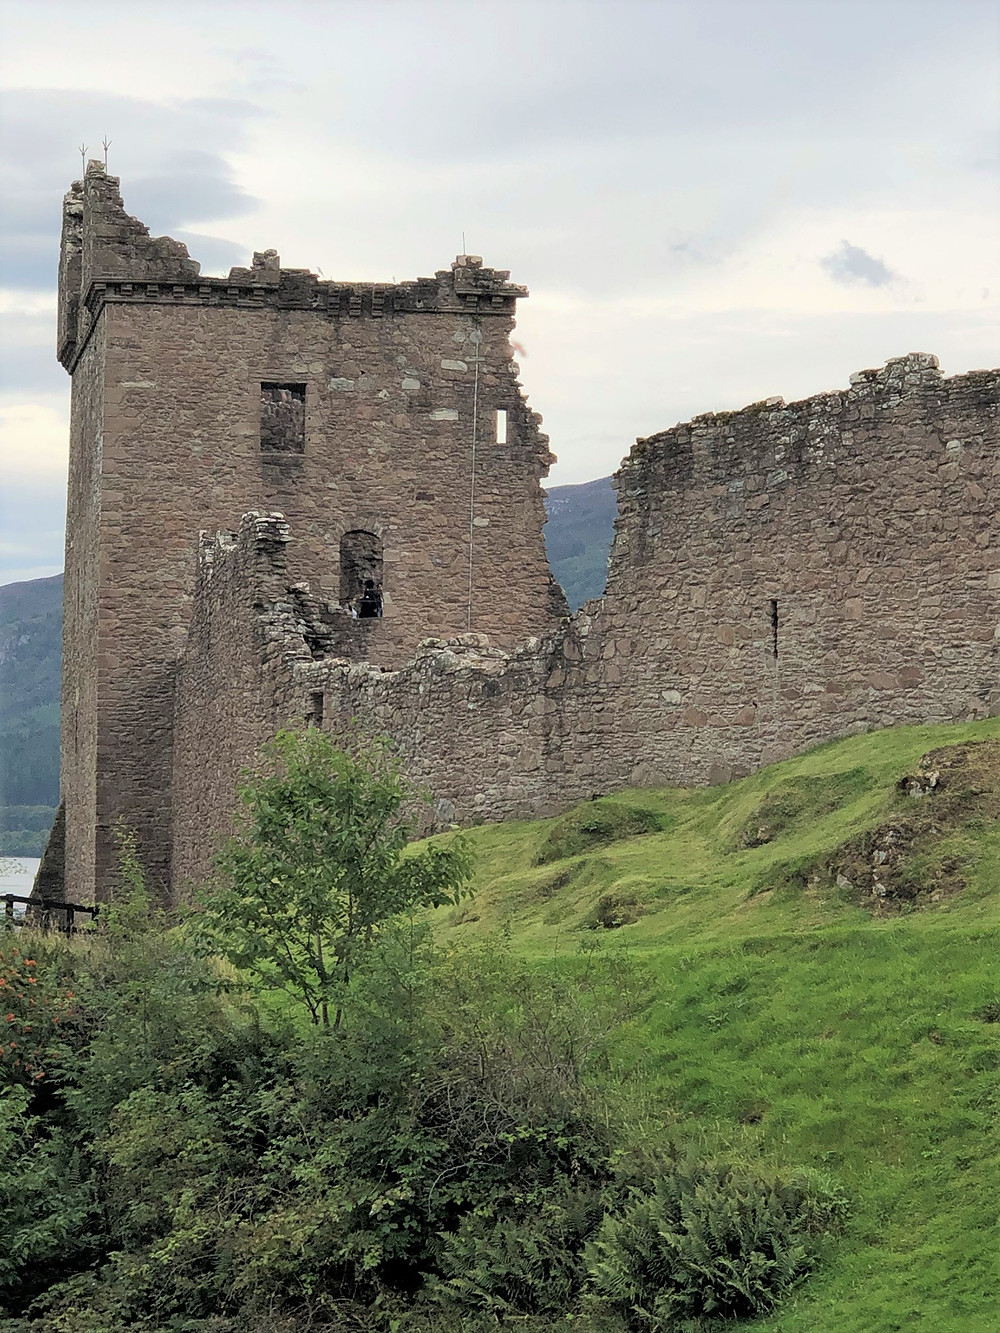 Ruins of Urquhart castle towers and walls sits on the banks of Loch Ness